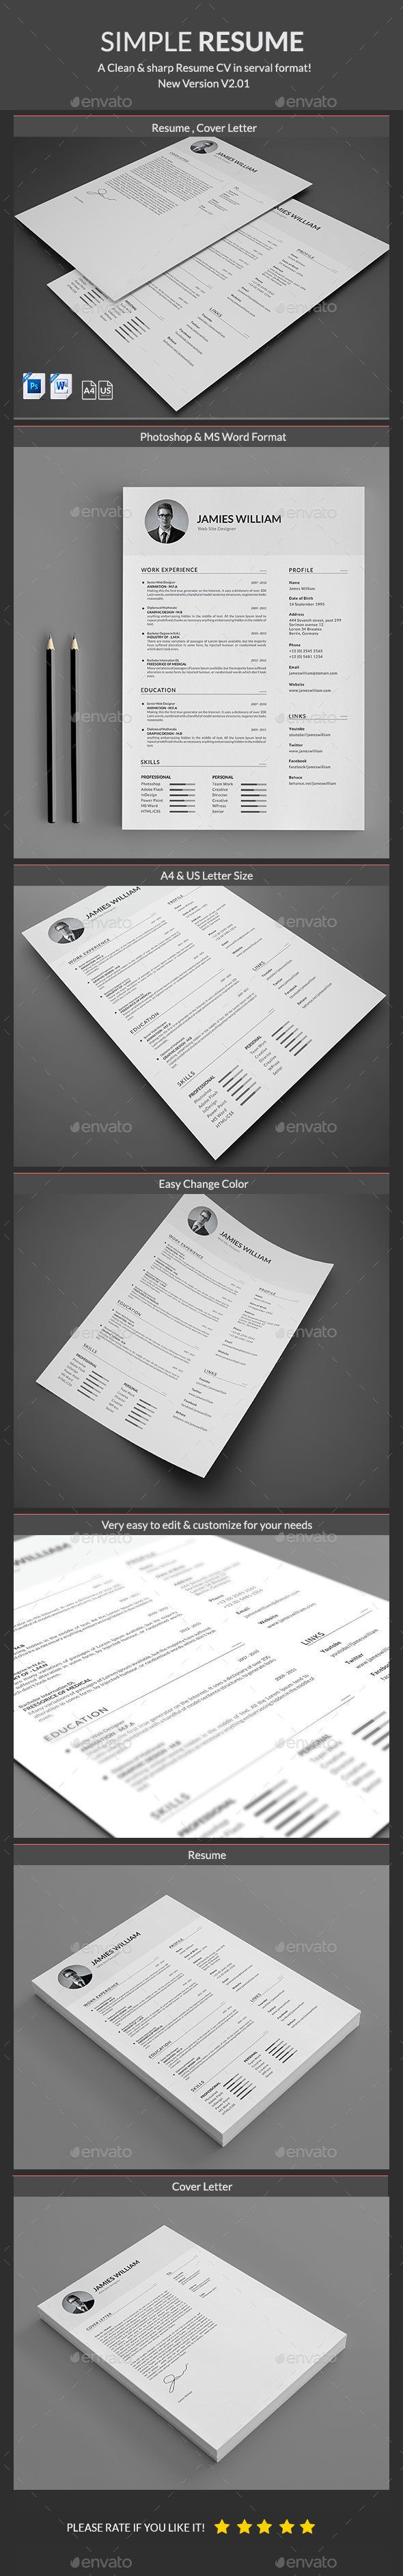 Resume Template PSD. Download here: http://graphicriver.net/item ...